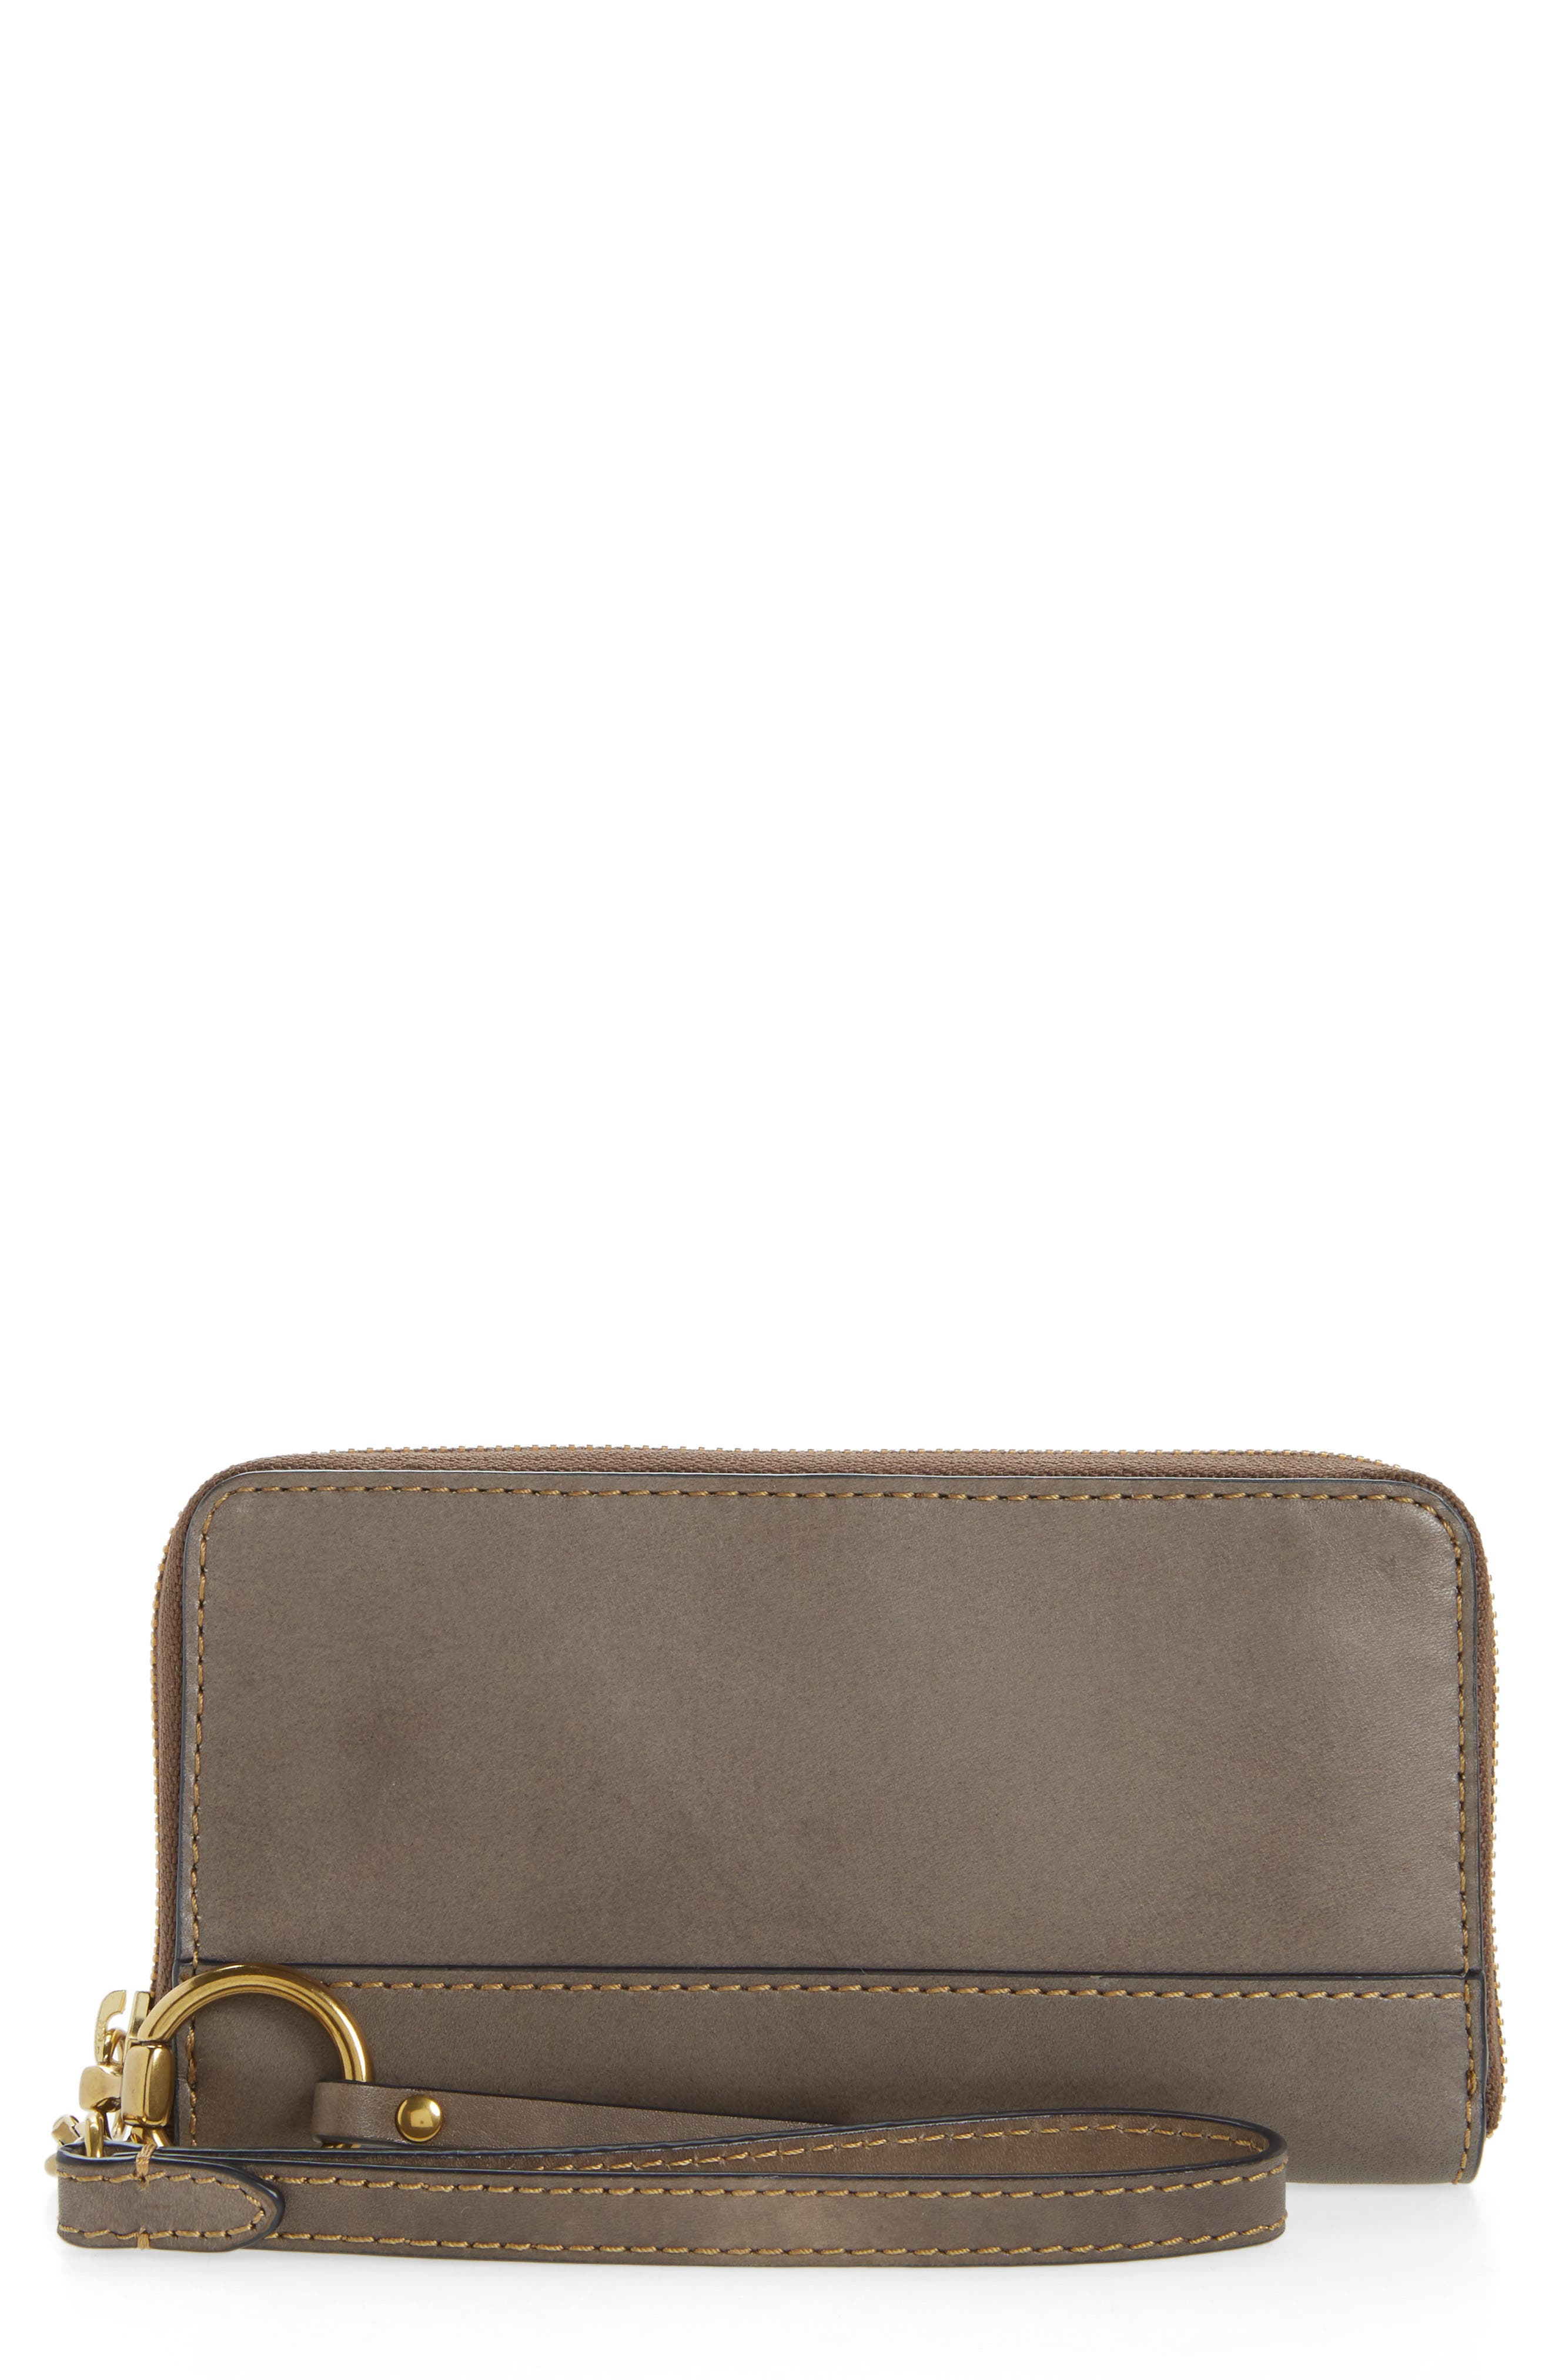 Ilana Harness Phone Leather Zip Wallet,                         Main,                         color,